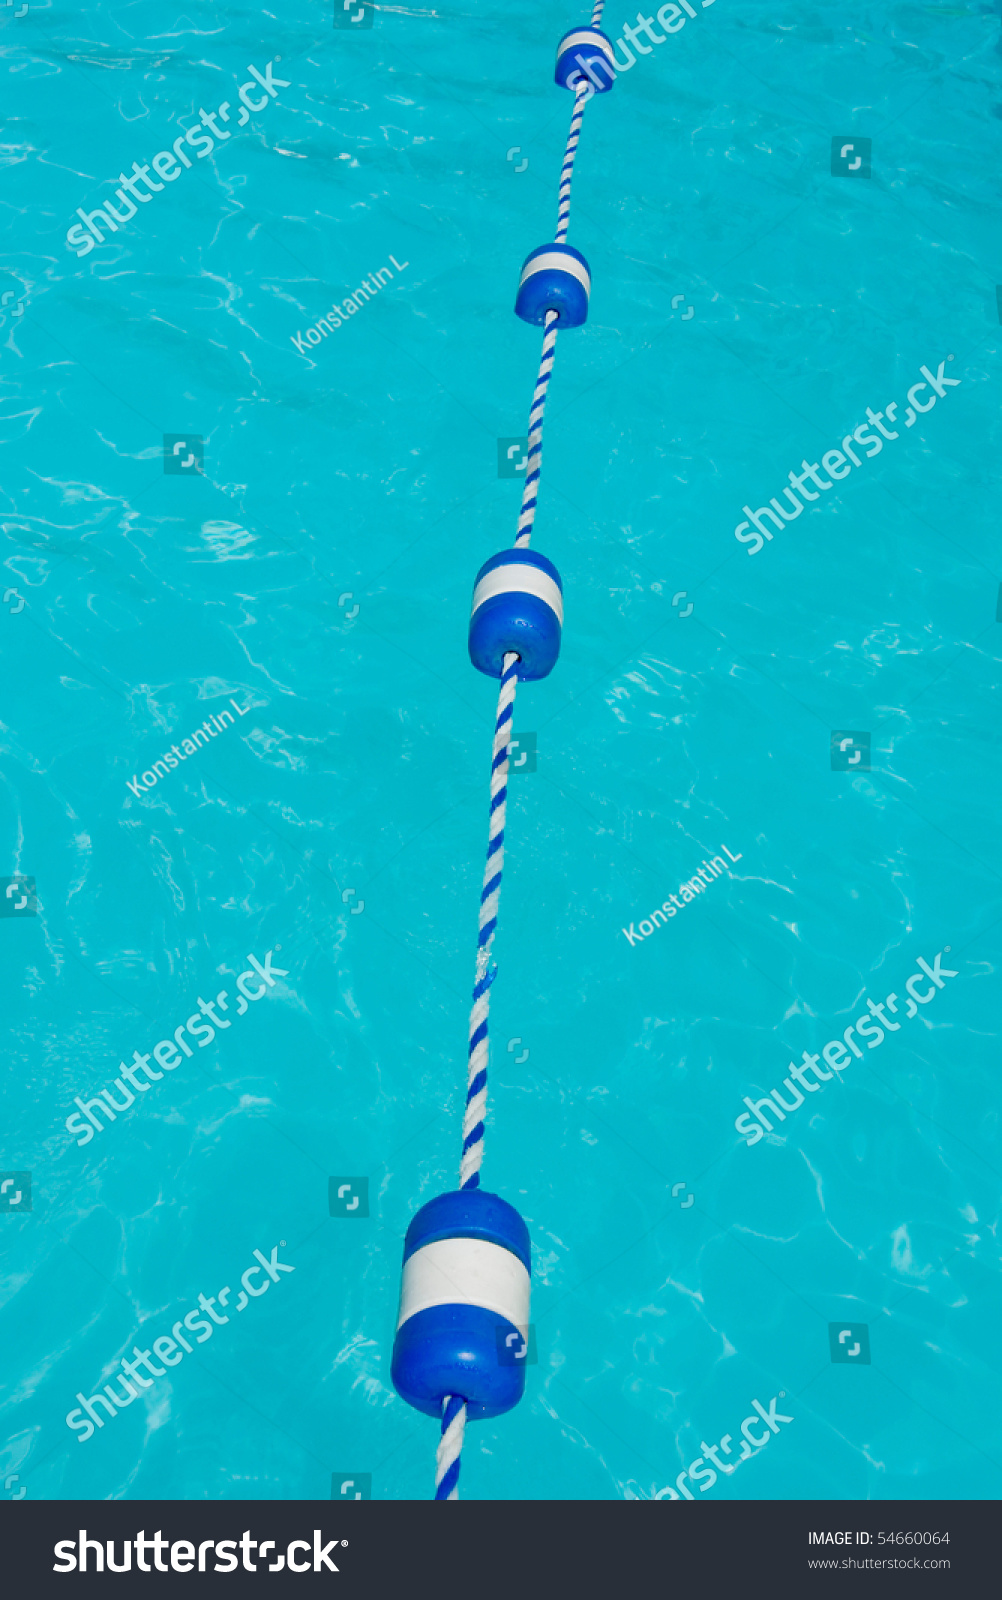 Swimming Pool Dividing Line With Floats Stock Photo